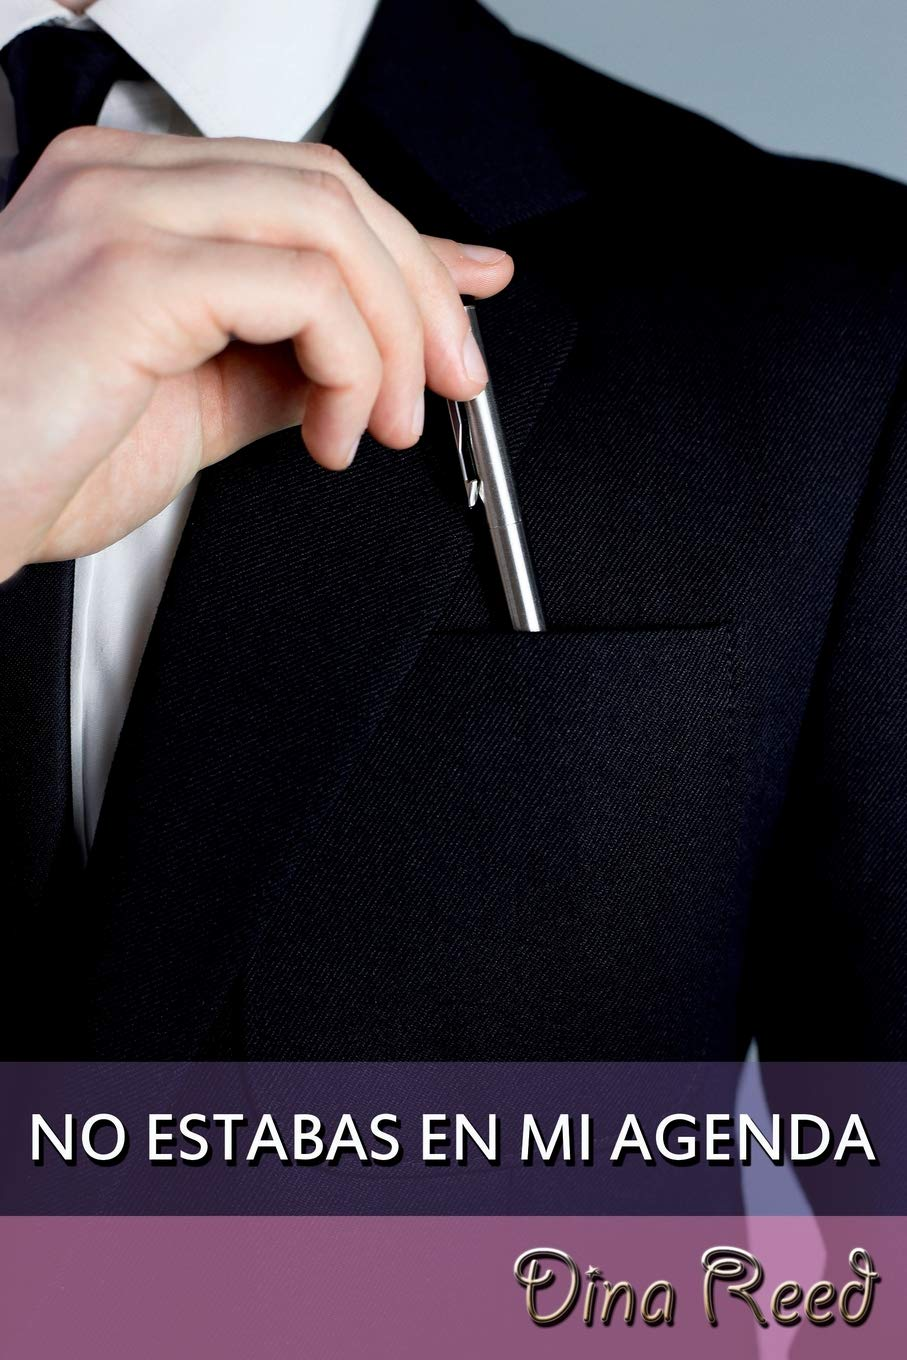 No estabas en mi agenda: Amazon.es: Dina Reed: Libros